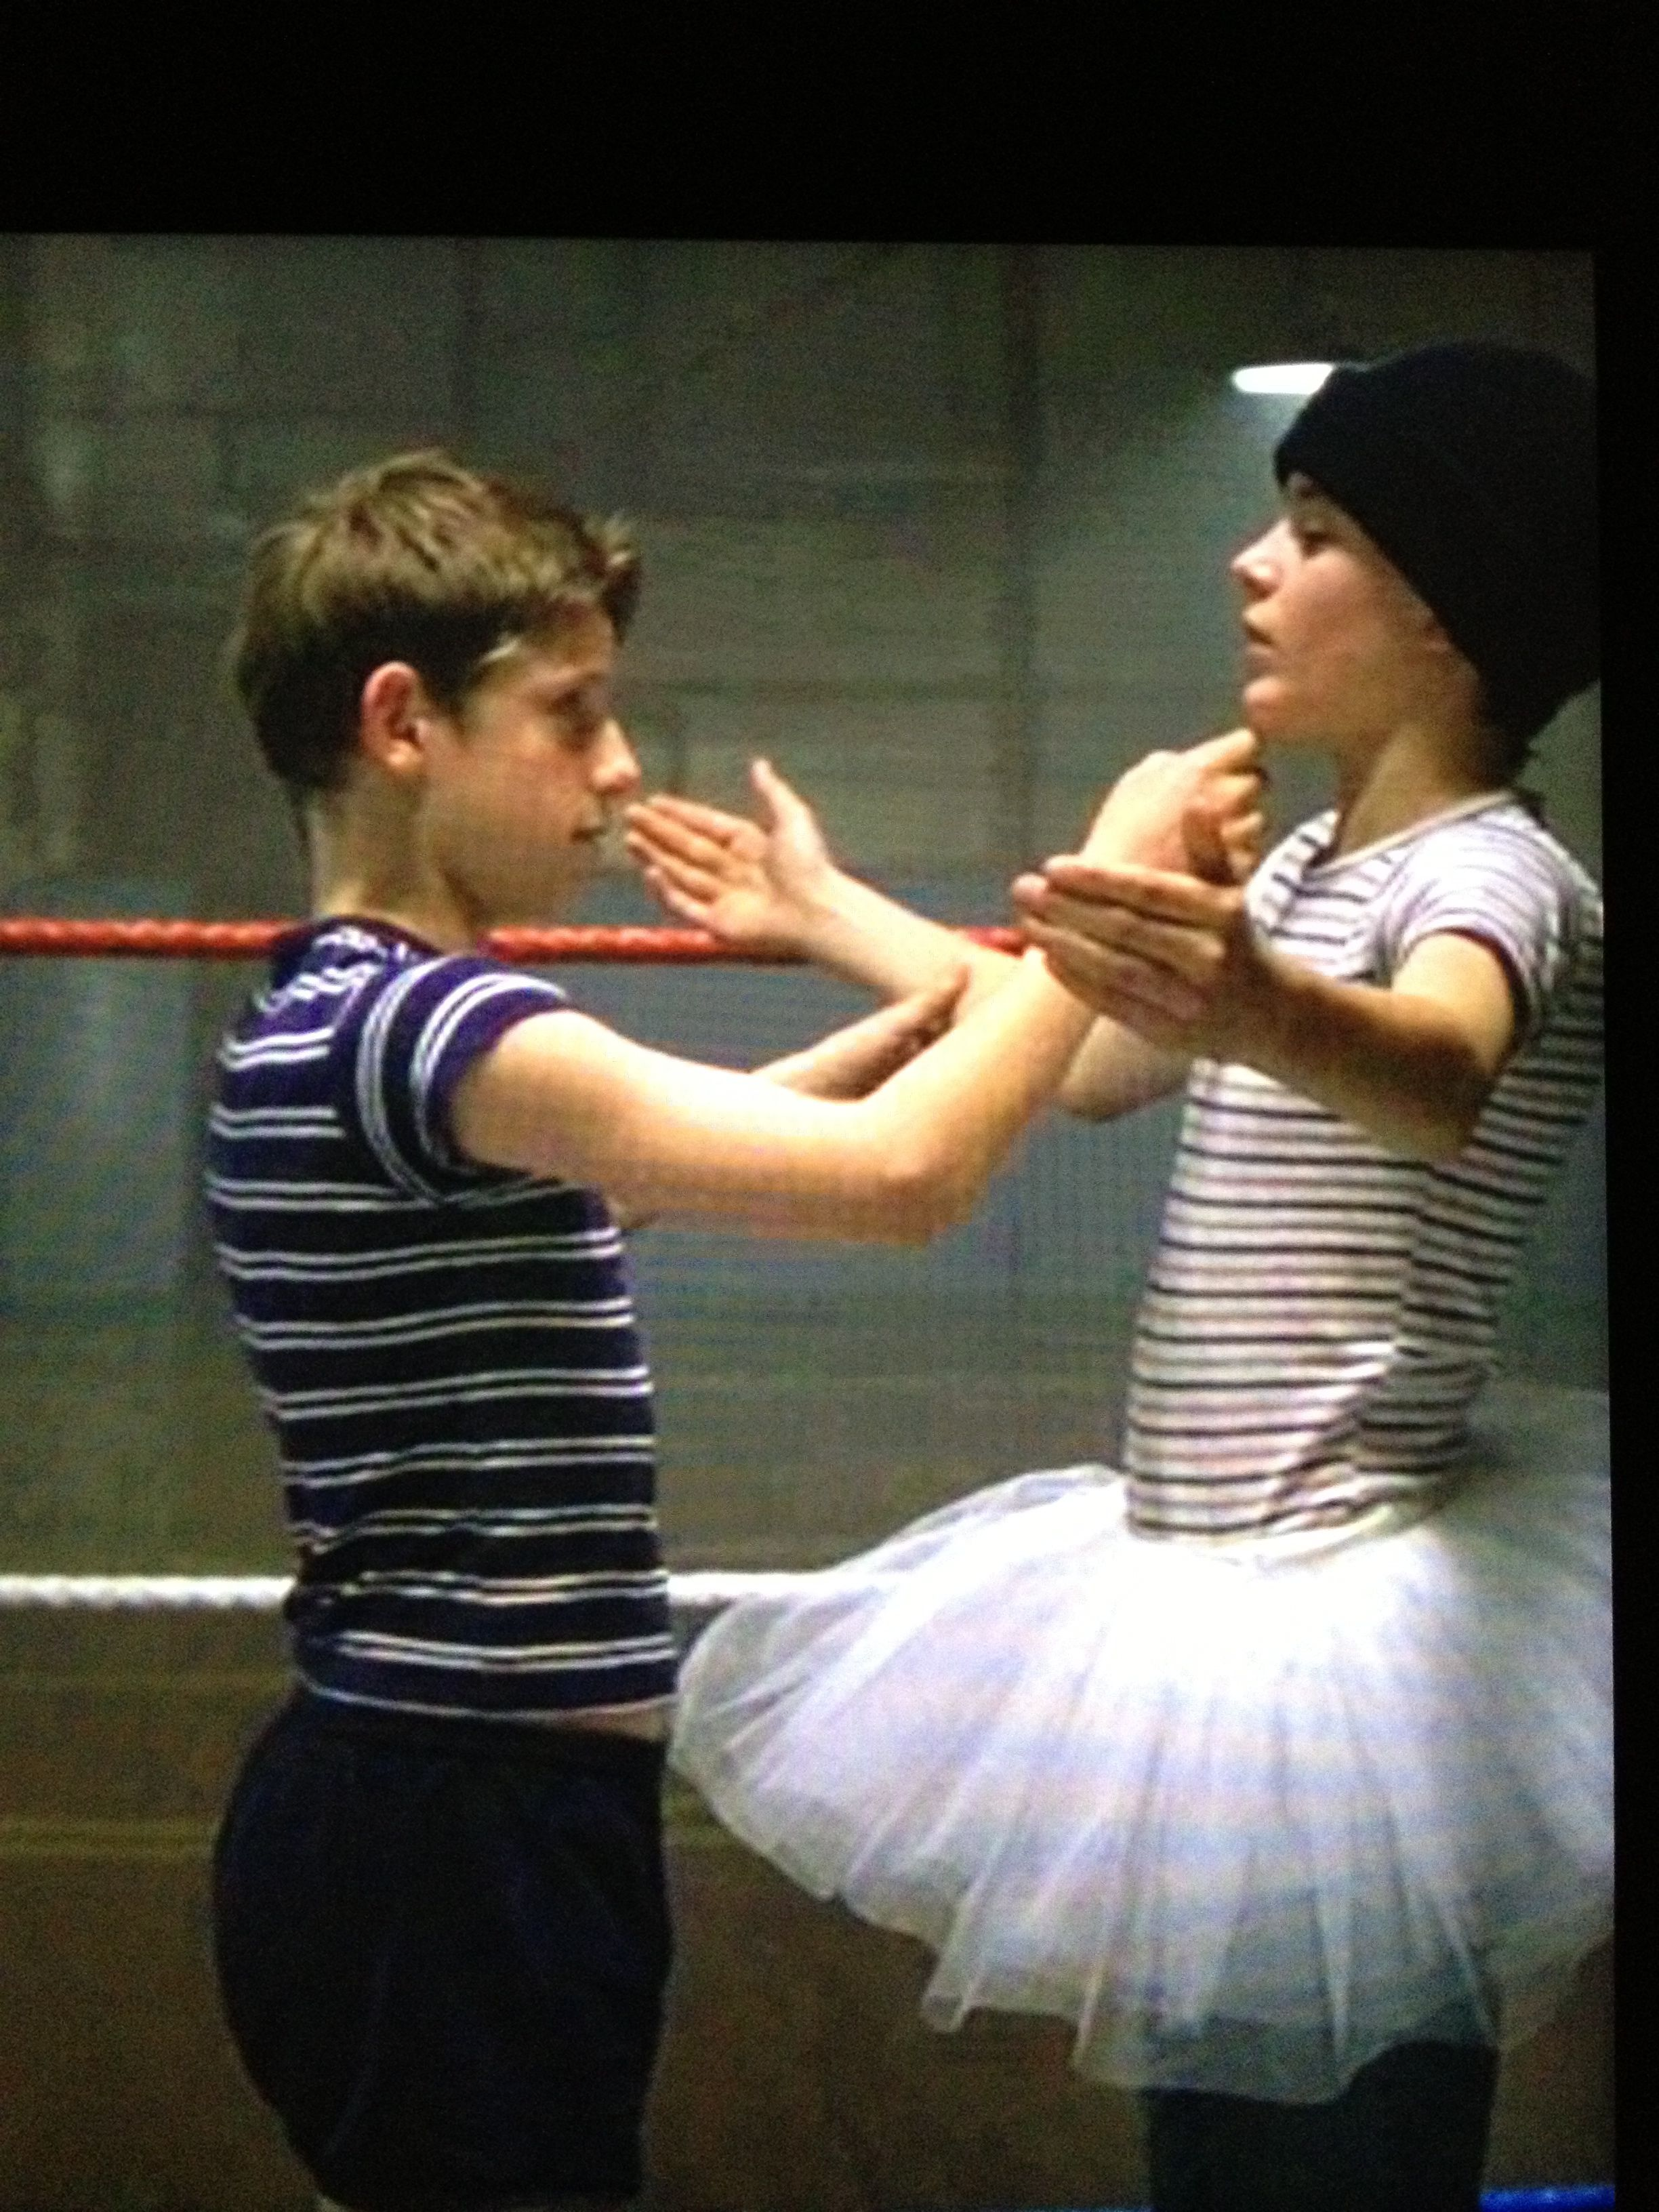 billy elliot film techniques essay Billy eliot is a motherless boy  [ ]  they may give you useful ways of looking at the film techniques that you can.